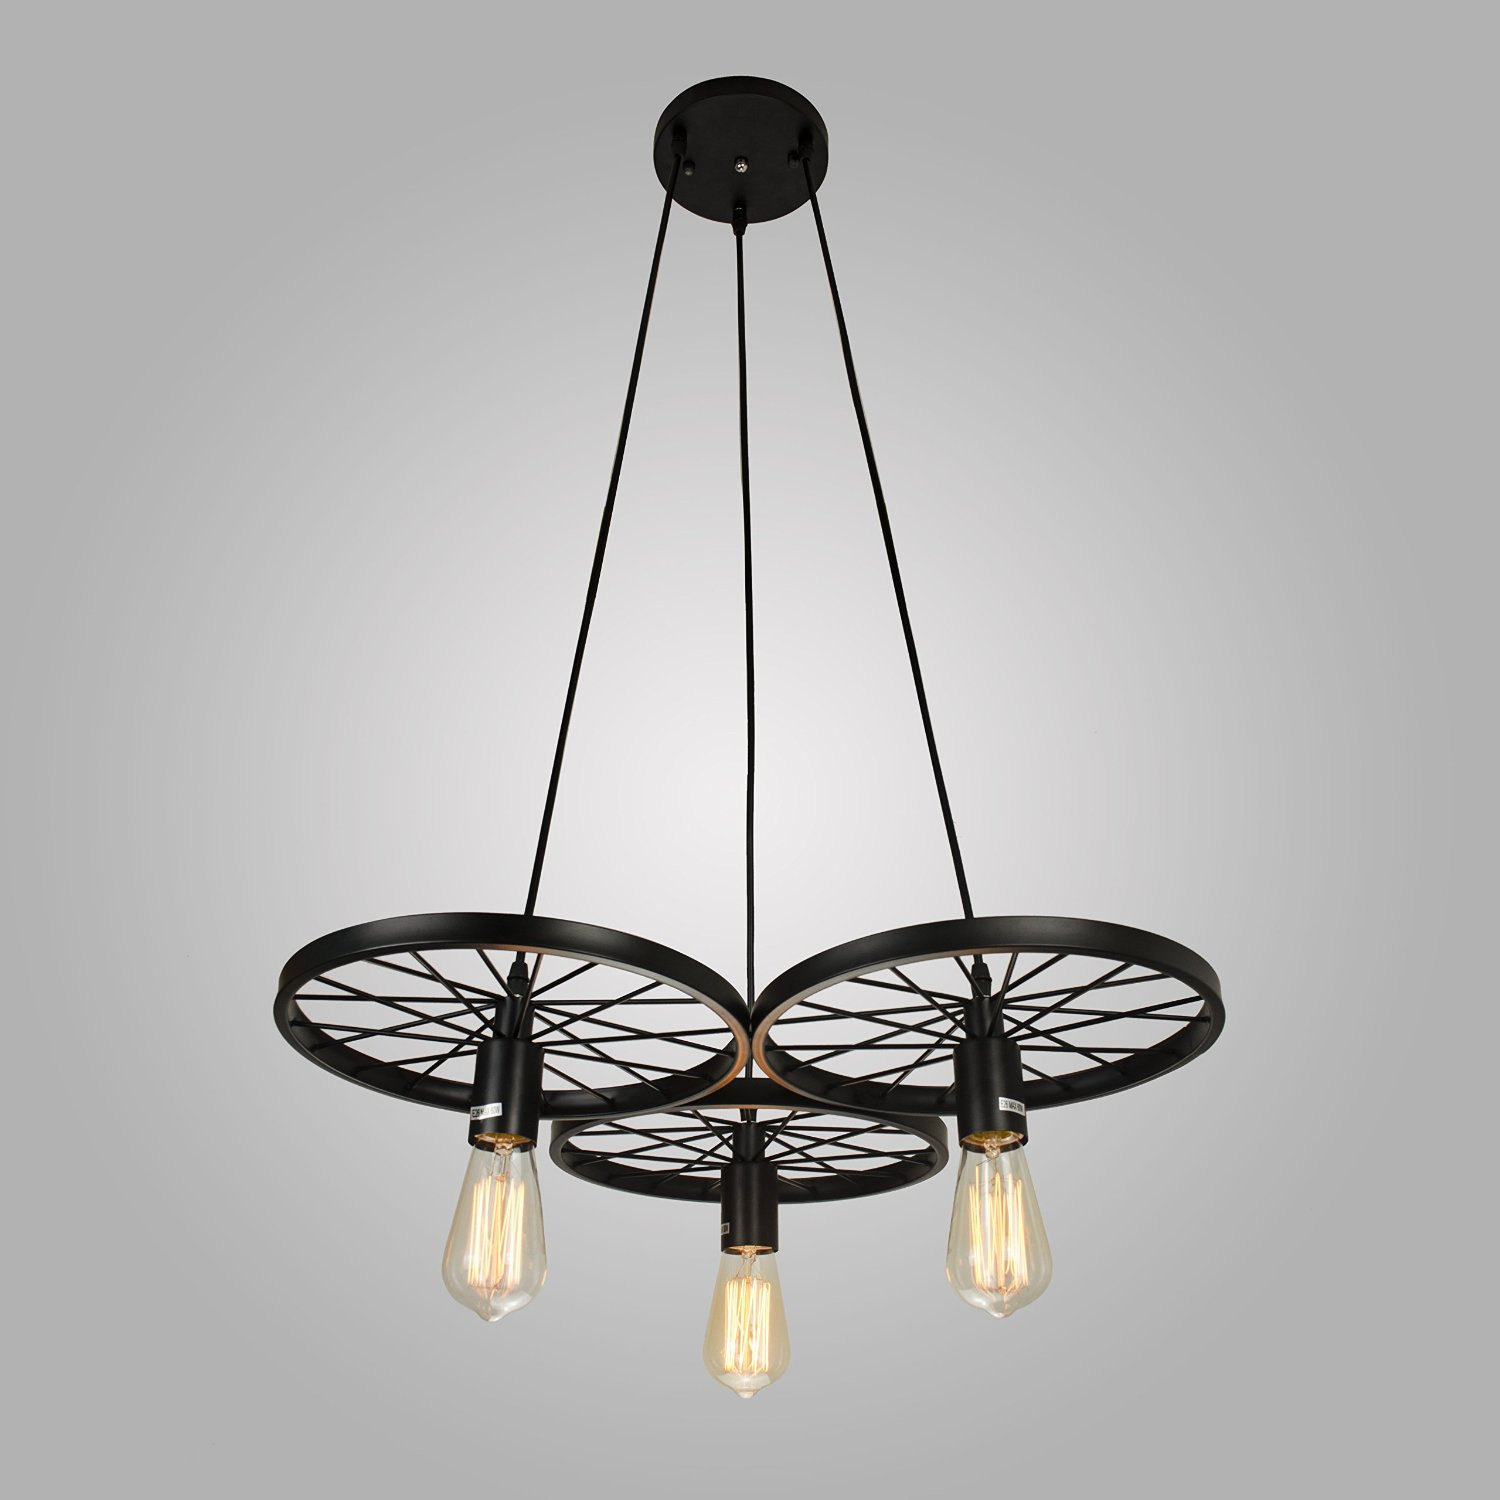 Industrial Style Lighting Industrial Style Pendant Light 3 Edison Bulbs Chandelier